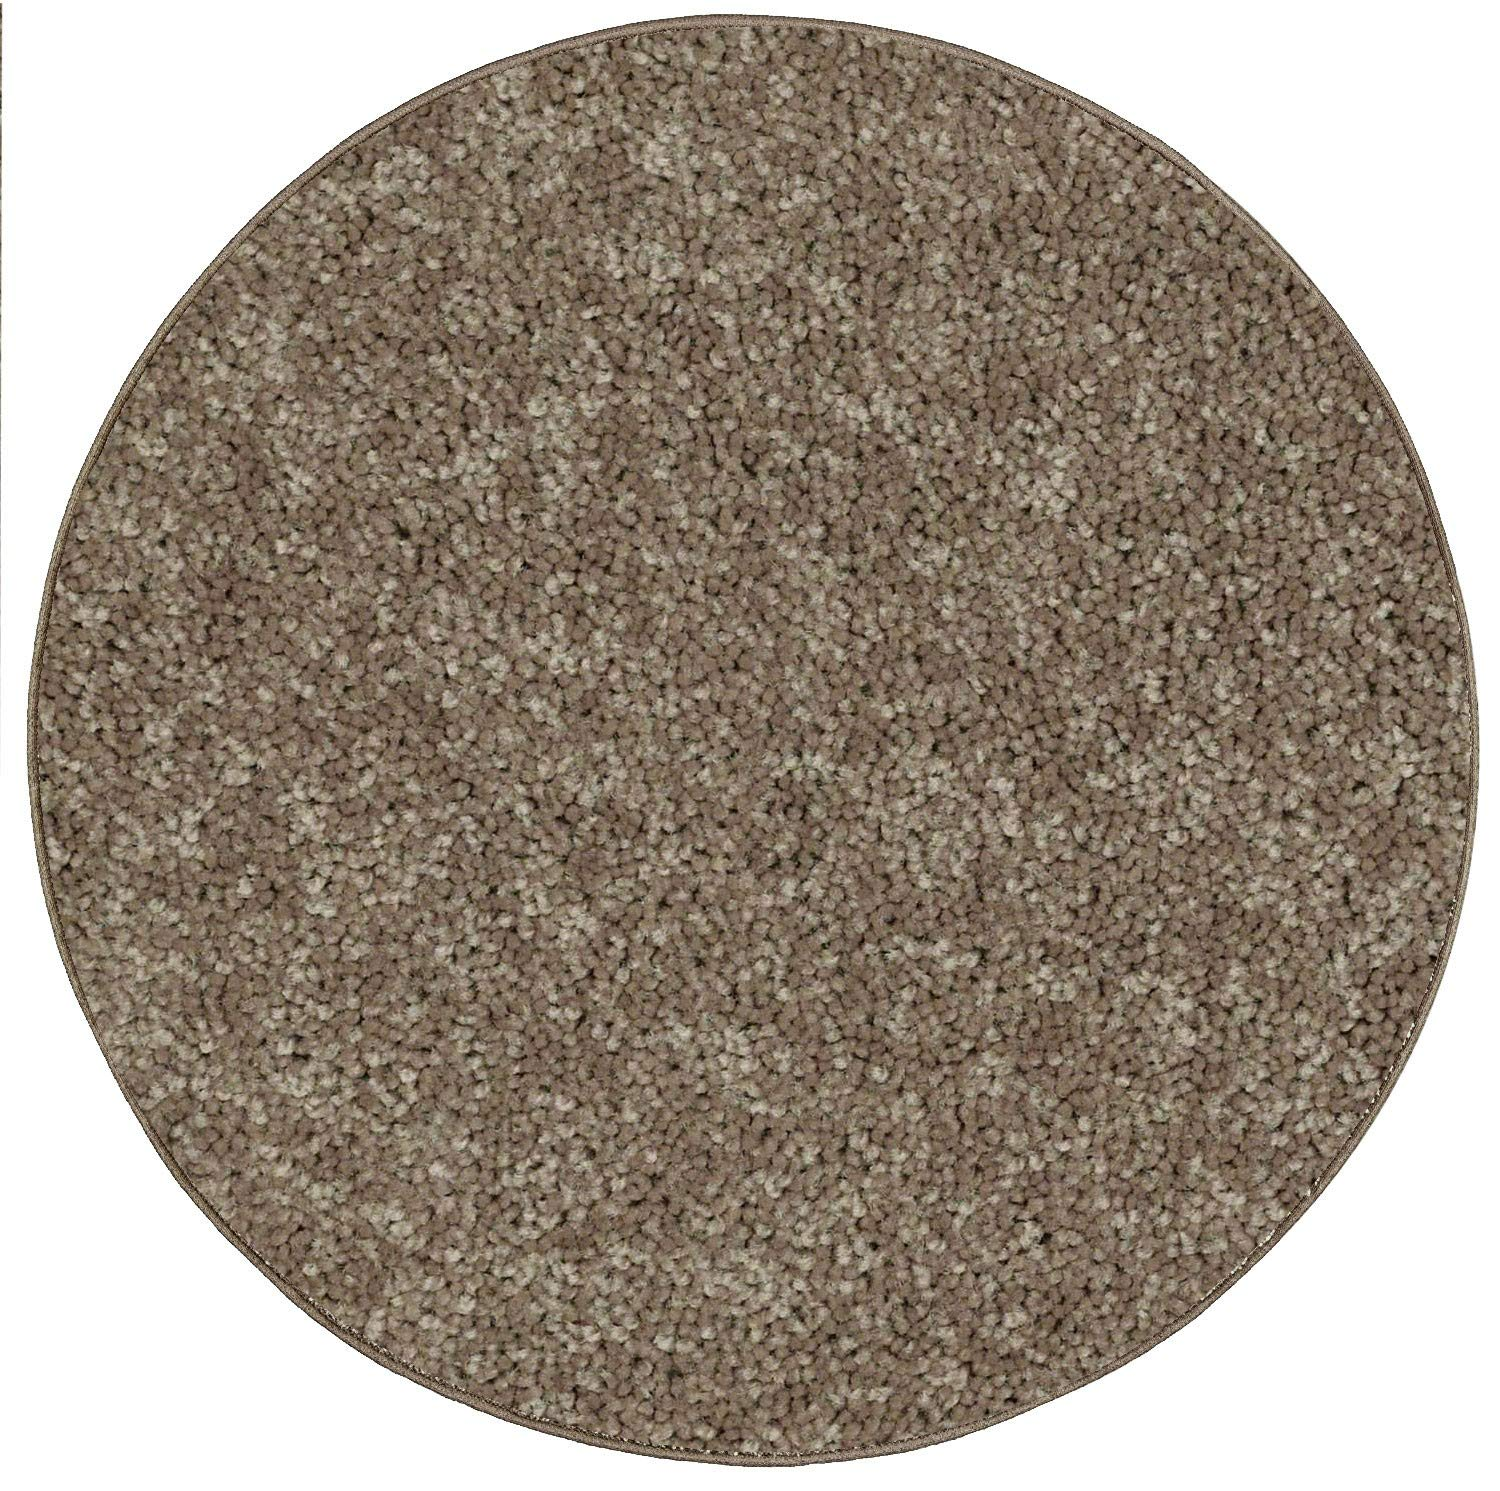 Color World Collection Way Solid Color Area Rugs Yellow - 7'x9' Oval